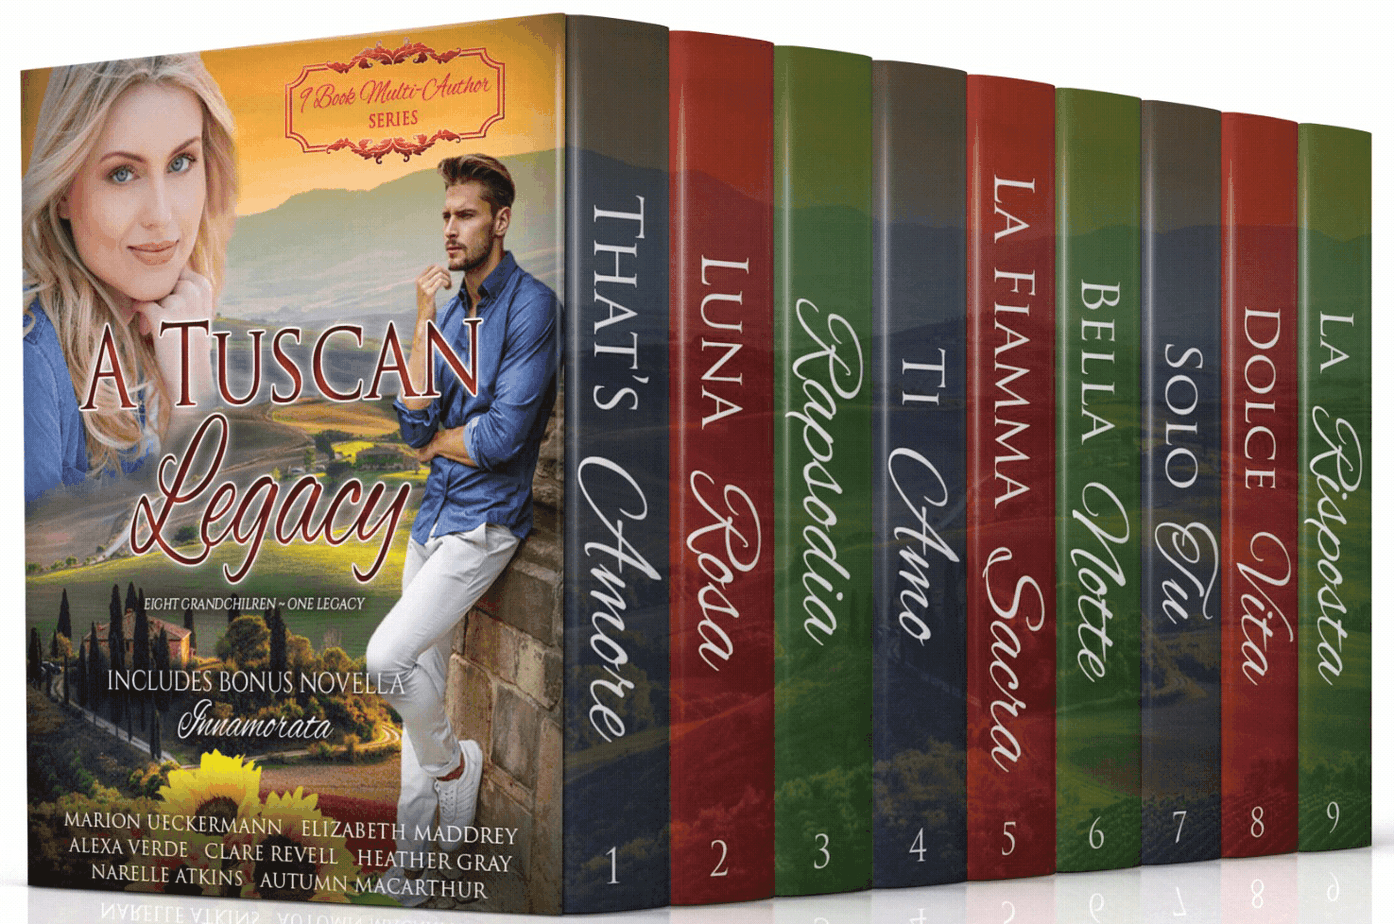 cover image showing a couple and a Tuscan villa for 10 book Christian romance set A Tuscan Legacy